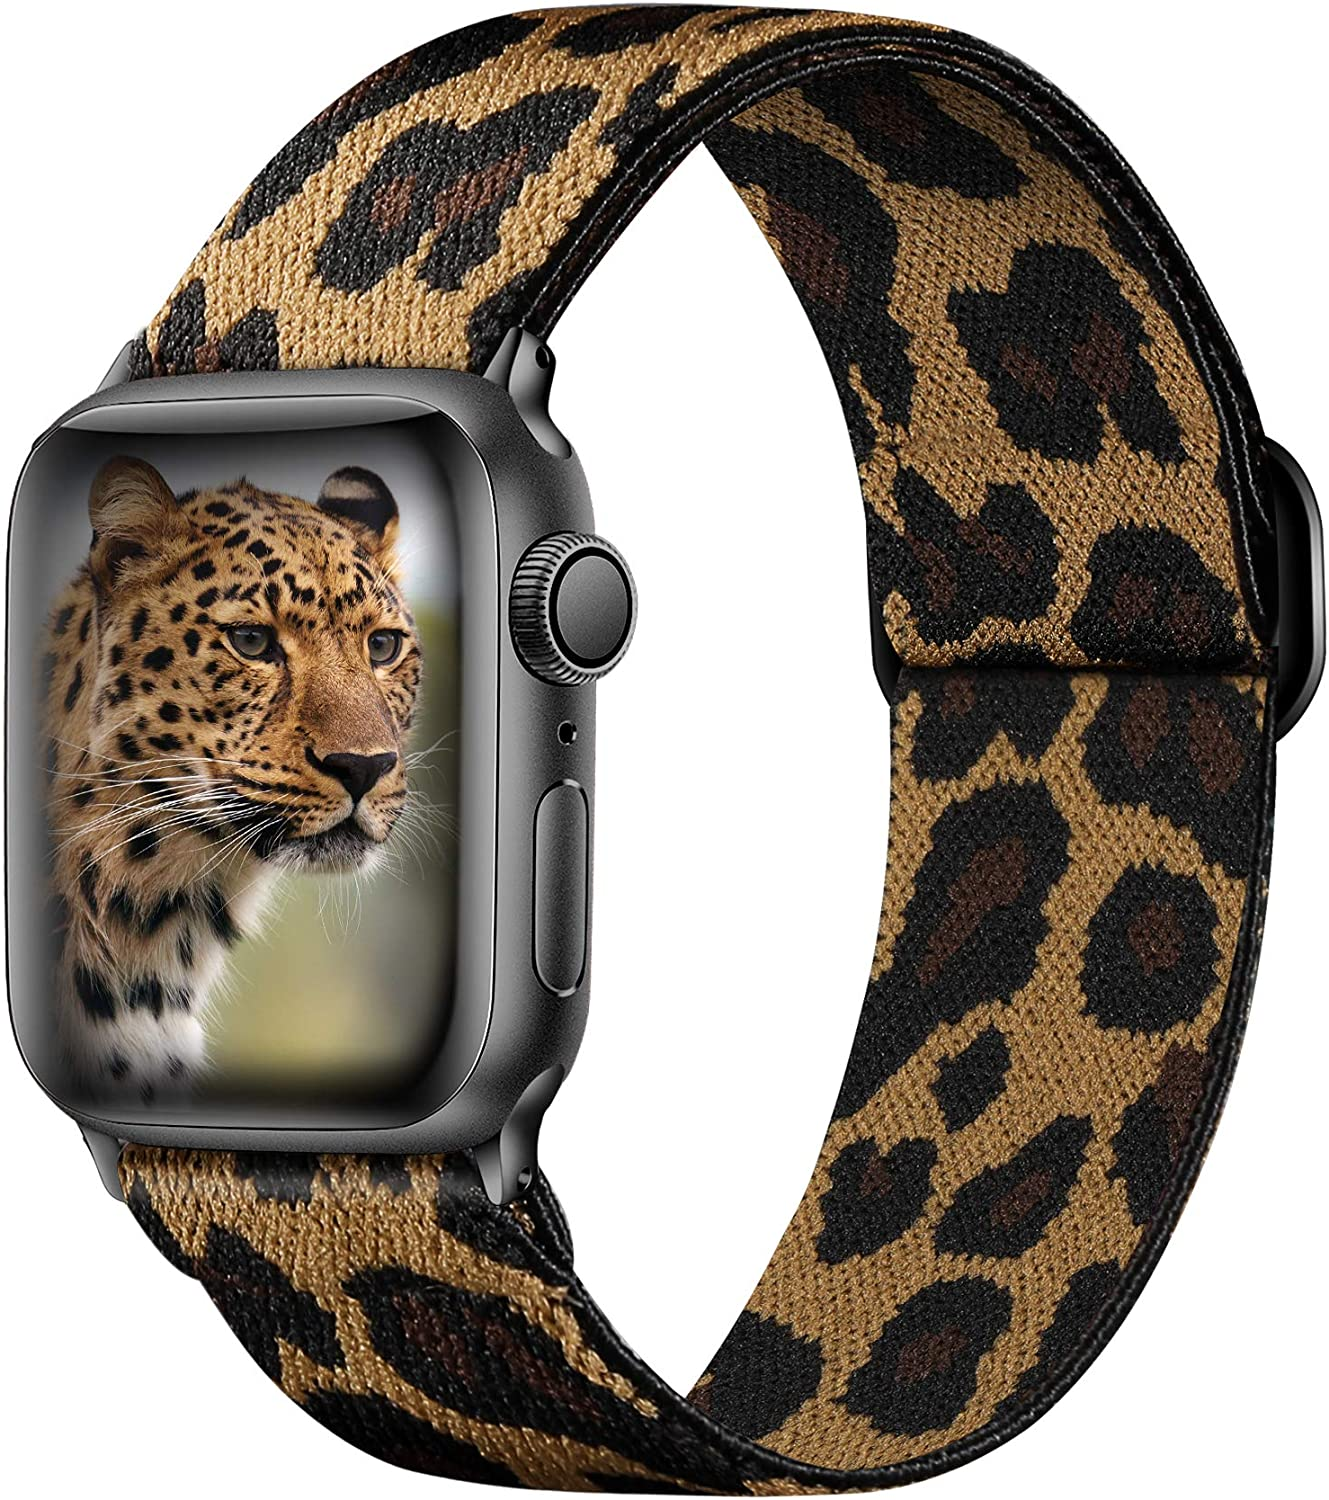 Ouwegaga Adjustable Elastic Bands Compatible with Apple Watch Band 44mm 42mm iWatch SE and Series 6 5 4 3 2 1 Fashion Cute Soft Stretchy Loop Woven Fabric Wristband for Women Men Leopard Print Pattern